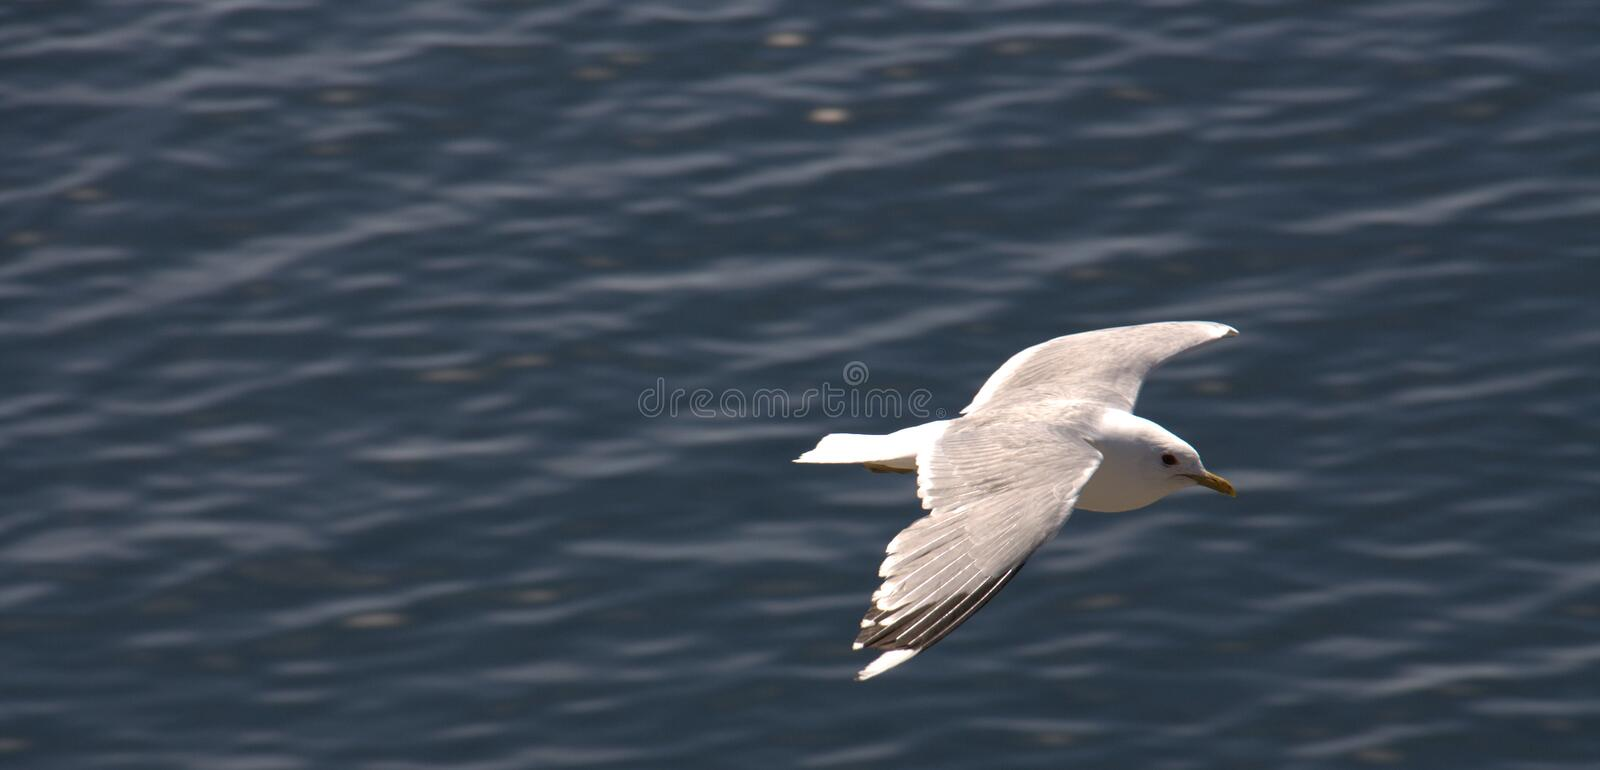 Download Seagull Soaring Over Water Royalty Free Stock Image - Image: 20317626